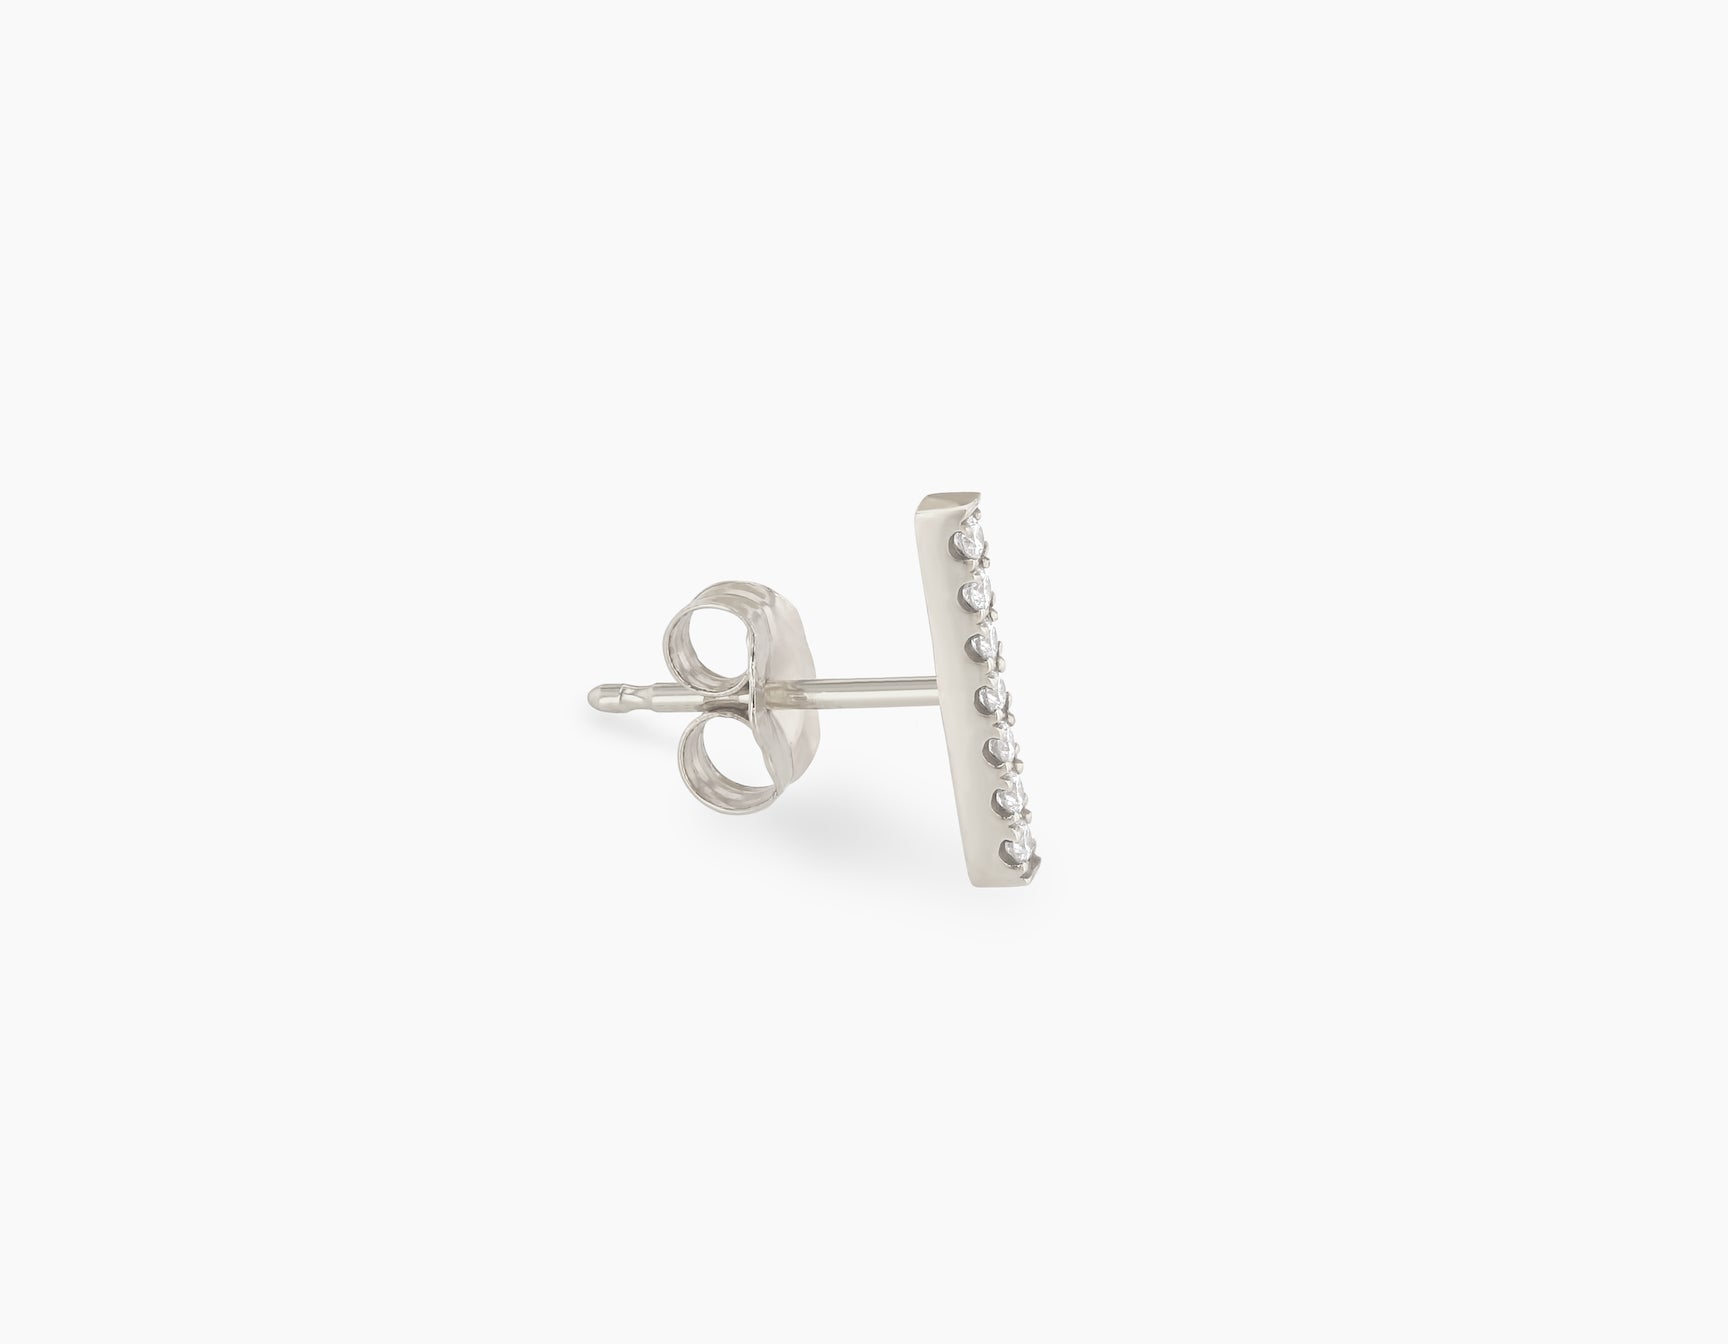 Vrai solid gold Pave Line Stud, 14K White Gold